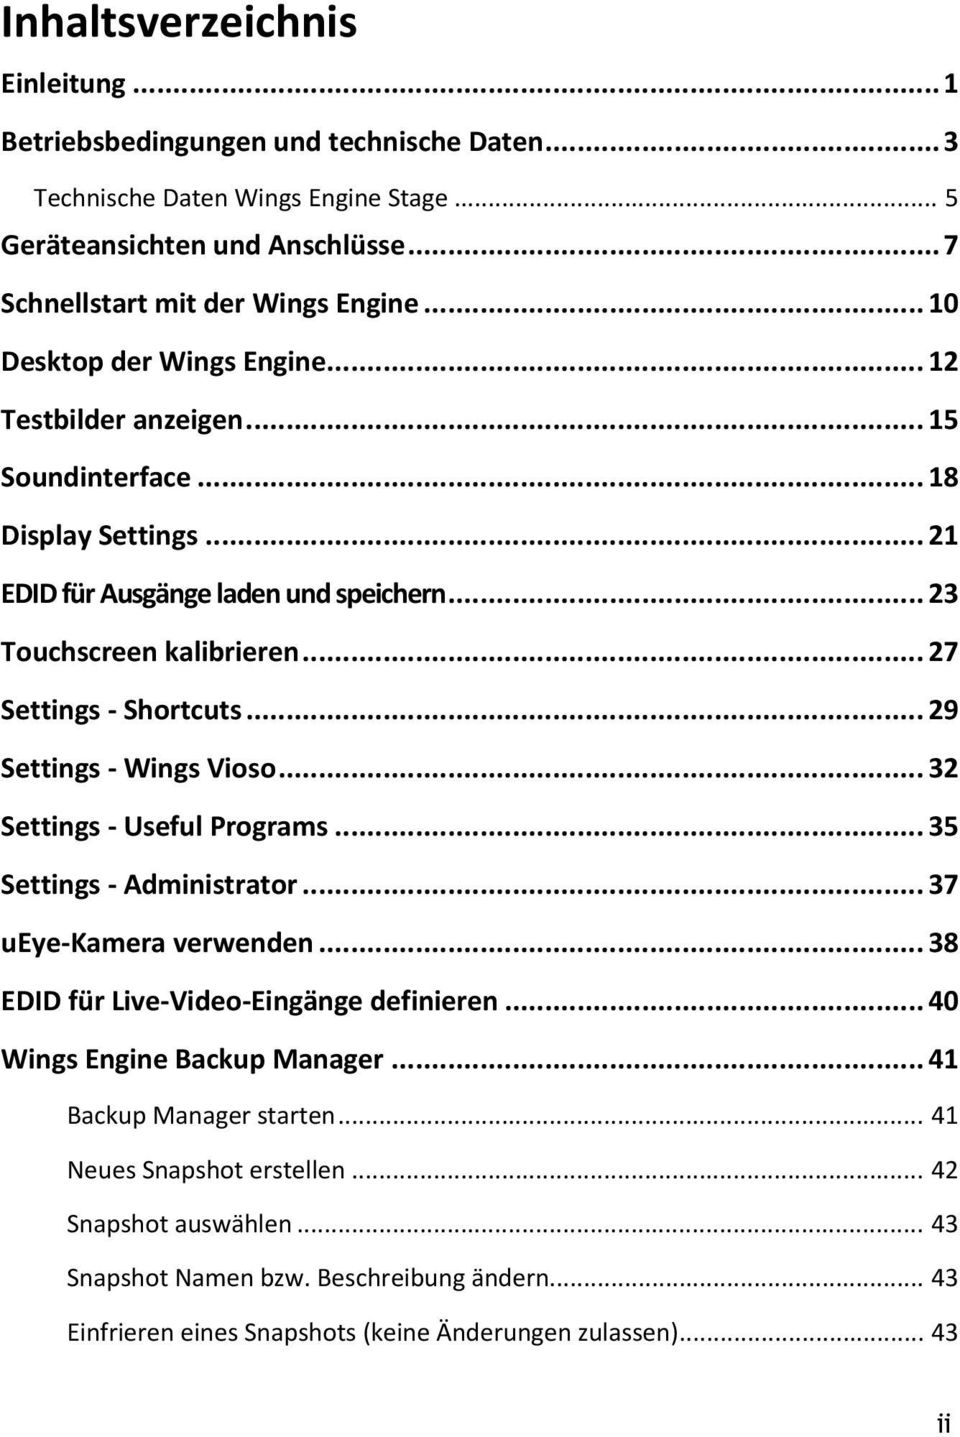 .. 27 Settings Shortcuts... 29 Settings Wings Vioso... 32 Settings Useful Programs... 35 Settings Administrator... 37 ueye Kamera verwenden... 38 EDID für Live Video Eingänge definieren.